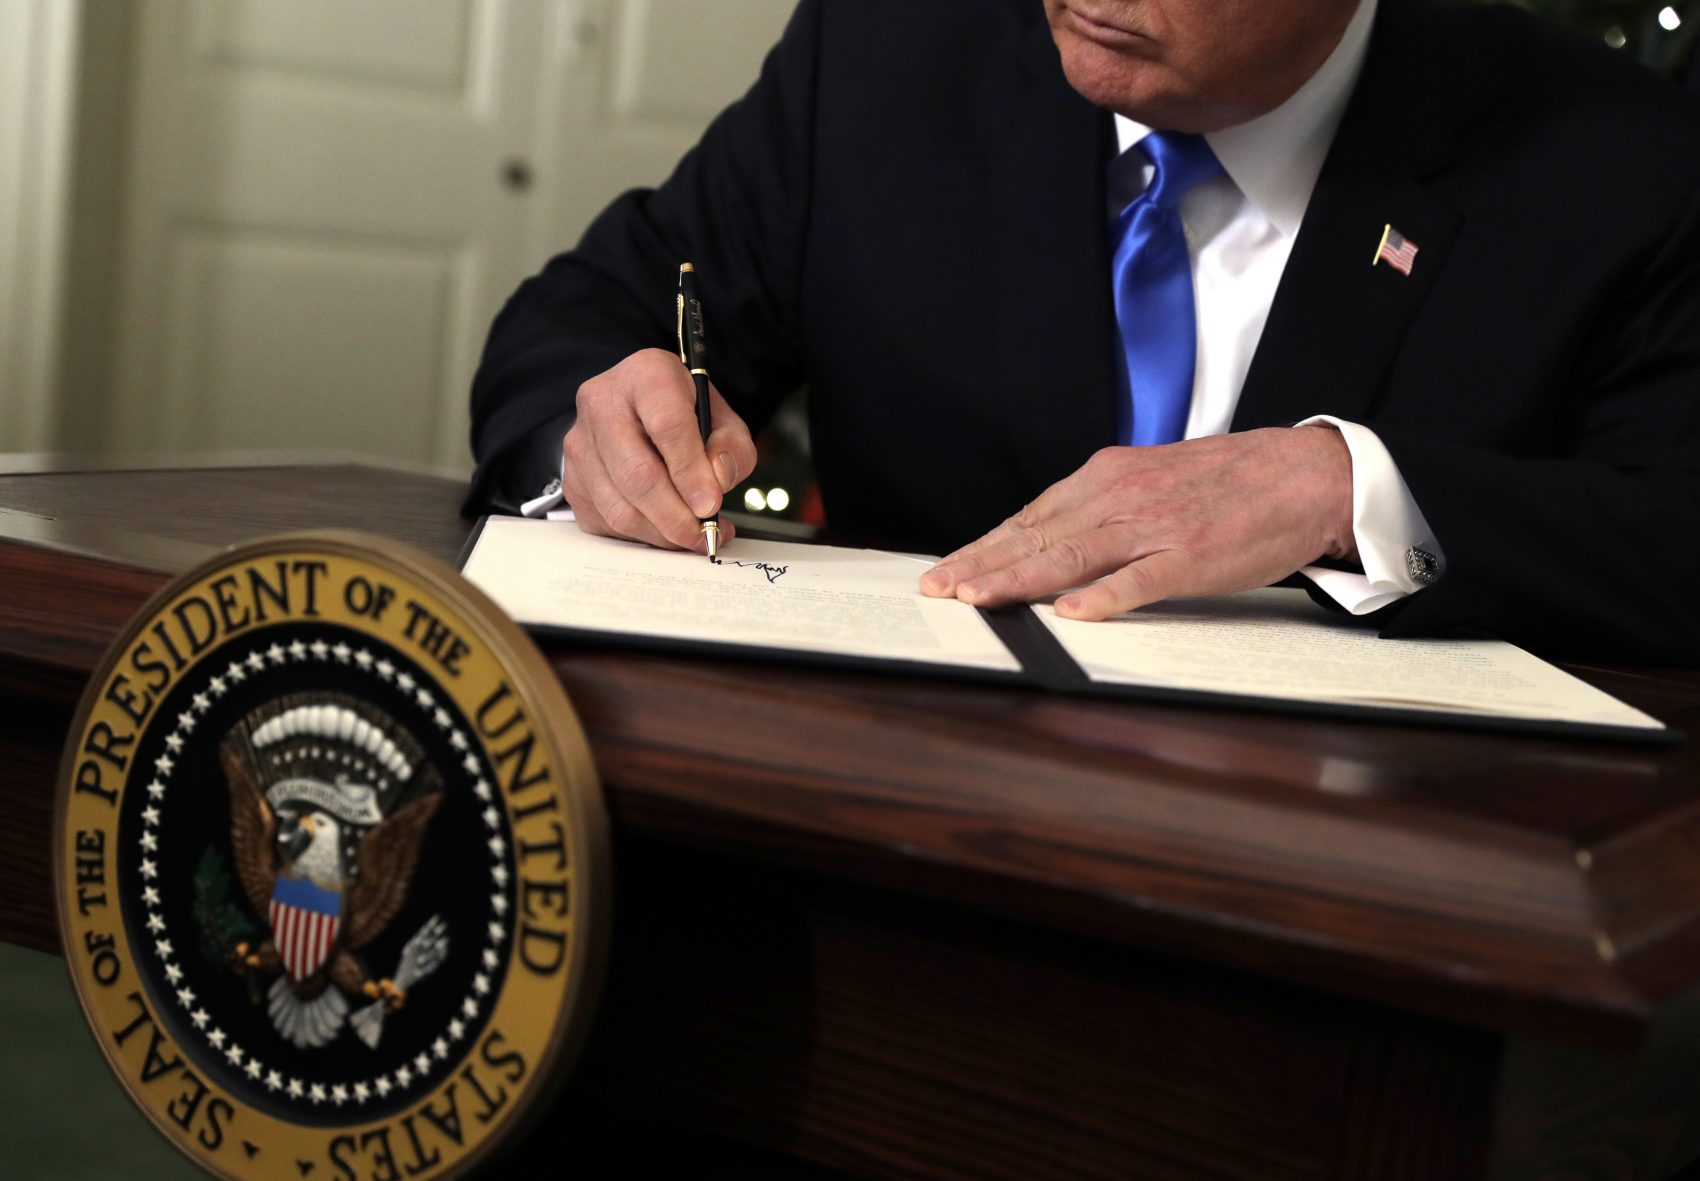 President Donald Trump signs a proclamation to recognize Jerusalem as the capital of Israel in the Diplomatic Reception Room of the White House, Wednesday, Dec. 6, 2017, in Washington. Trump recognized Jerusalem as Israel's capital despite intense Arab, Muslim and European opposition to a move that would upend decades of U.S. policy and risk potentially violent protests. (Evan Vucci/AP)